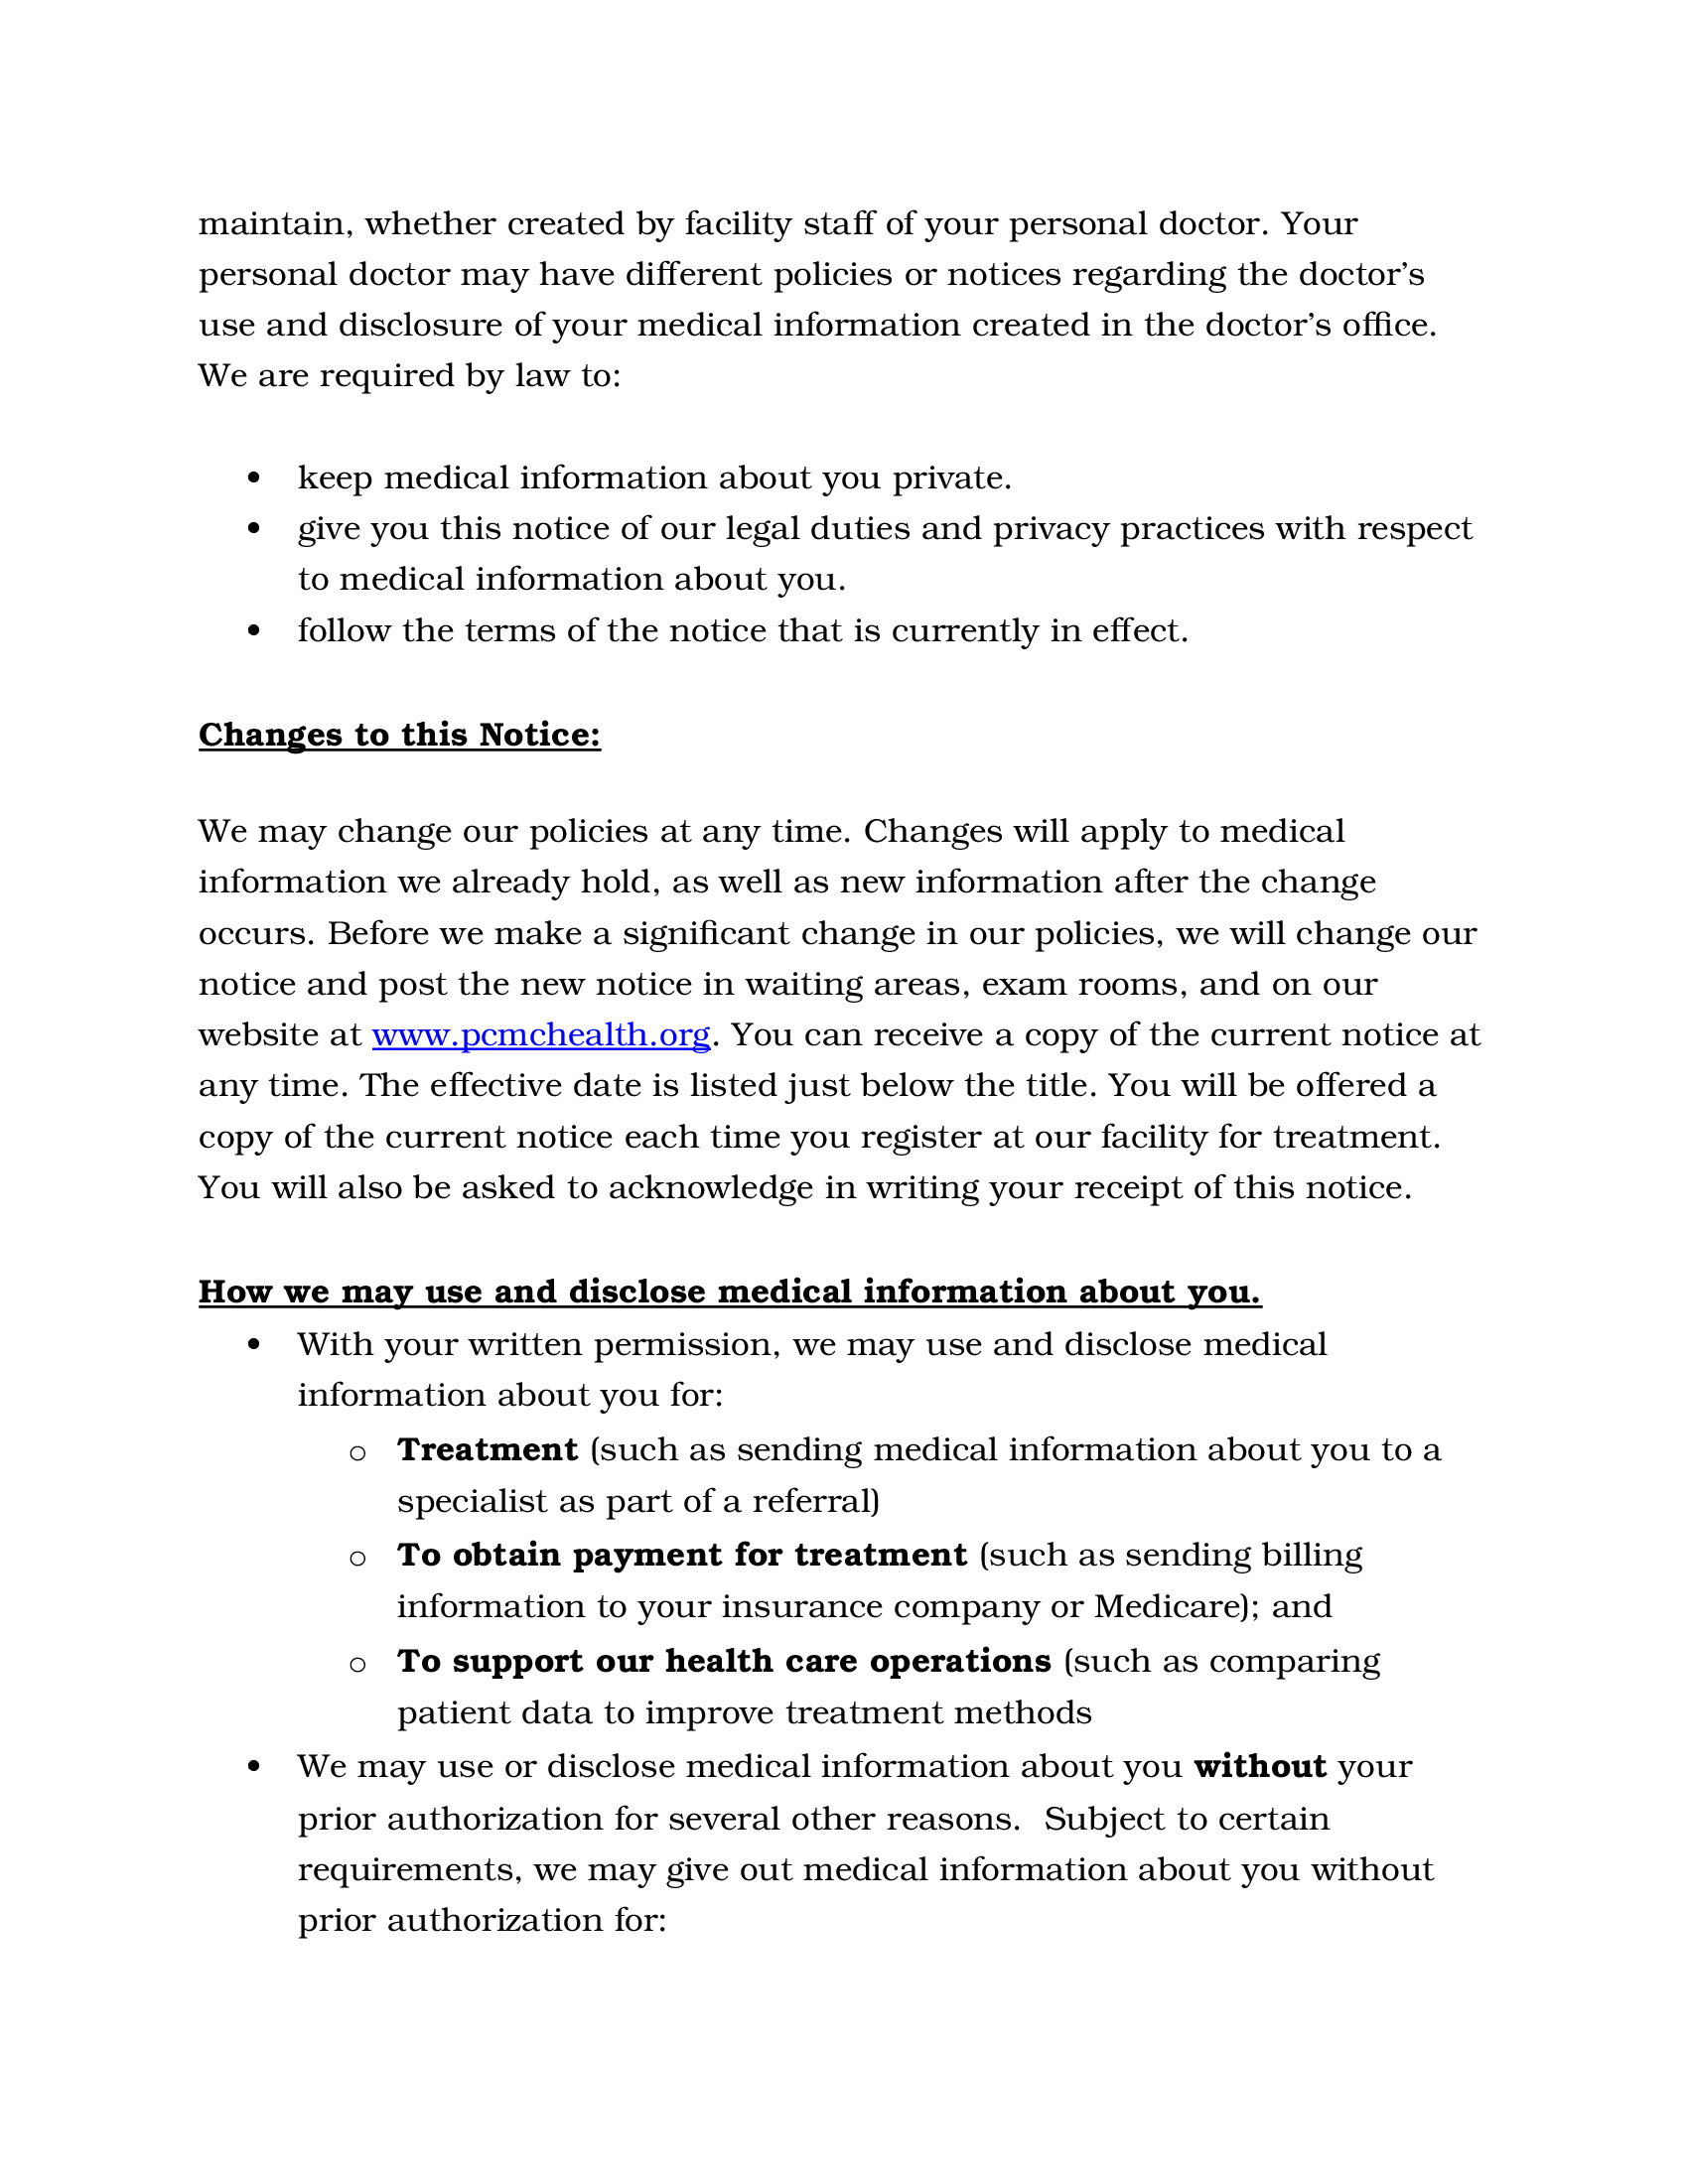 Notice of Privacy Practices_001